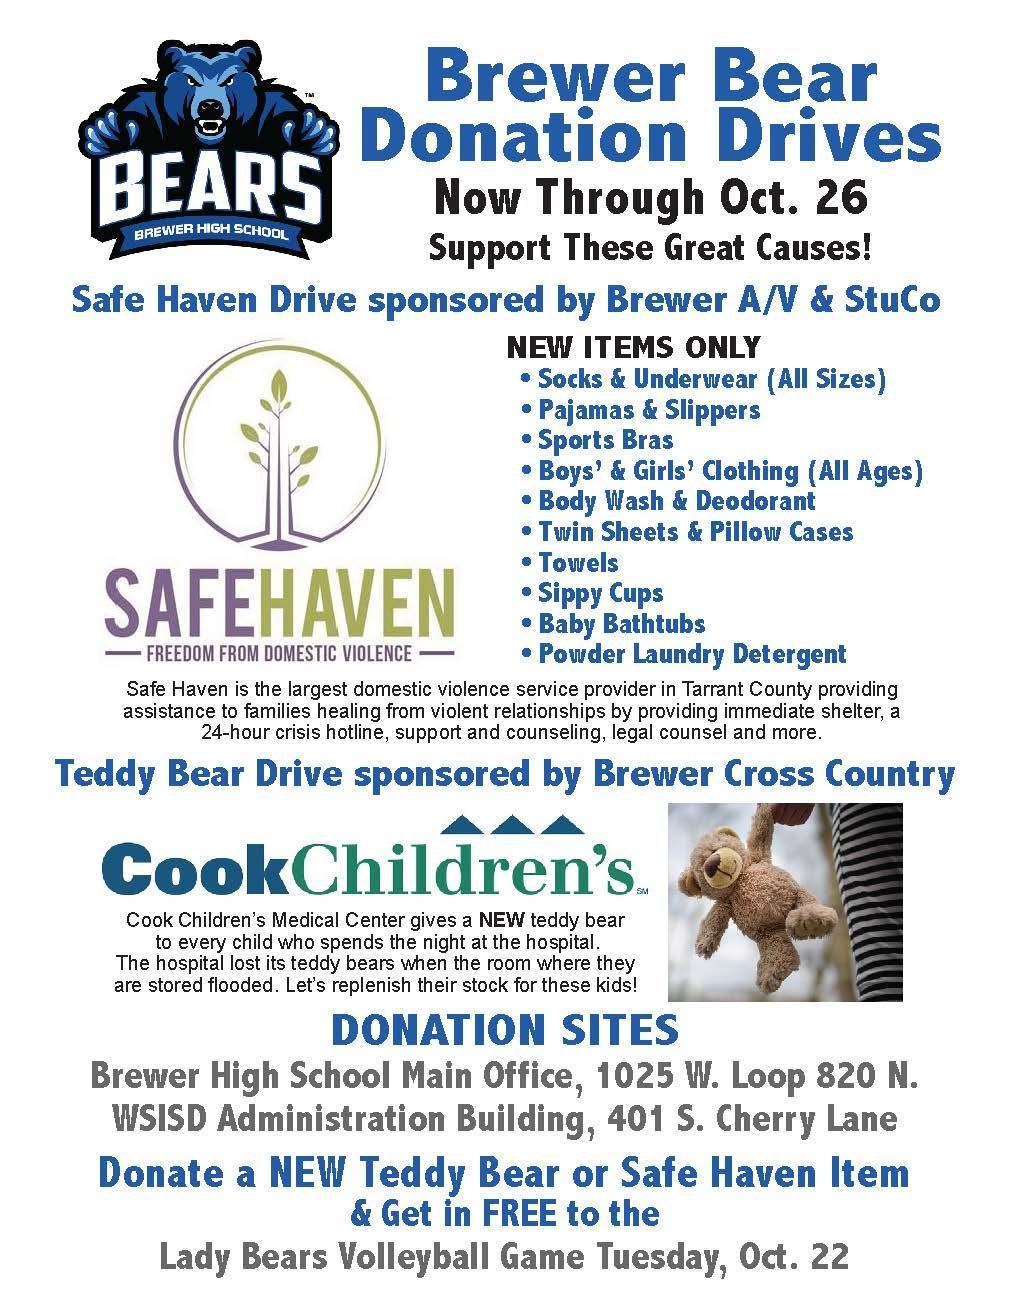 Brewer senior Marcus Martinez has enlisted the help of Brewer A/V Club and StuCo to collect items for Safe Haven of Tarrant County, an organization near and dear to his family.   Coach Amy Ganninger and the Brewer Cross Country Team are collecting Teddy Bears for Cook Children's Medical Center.